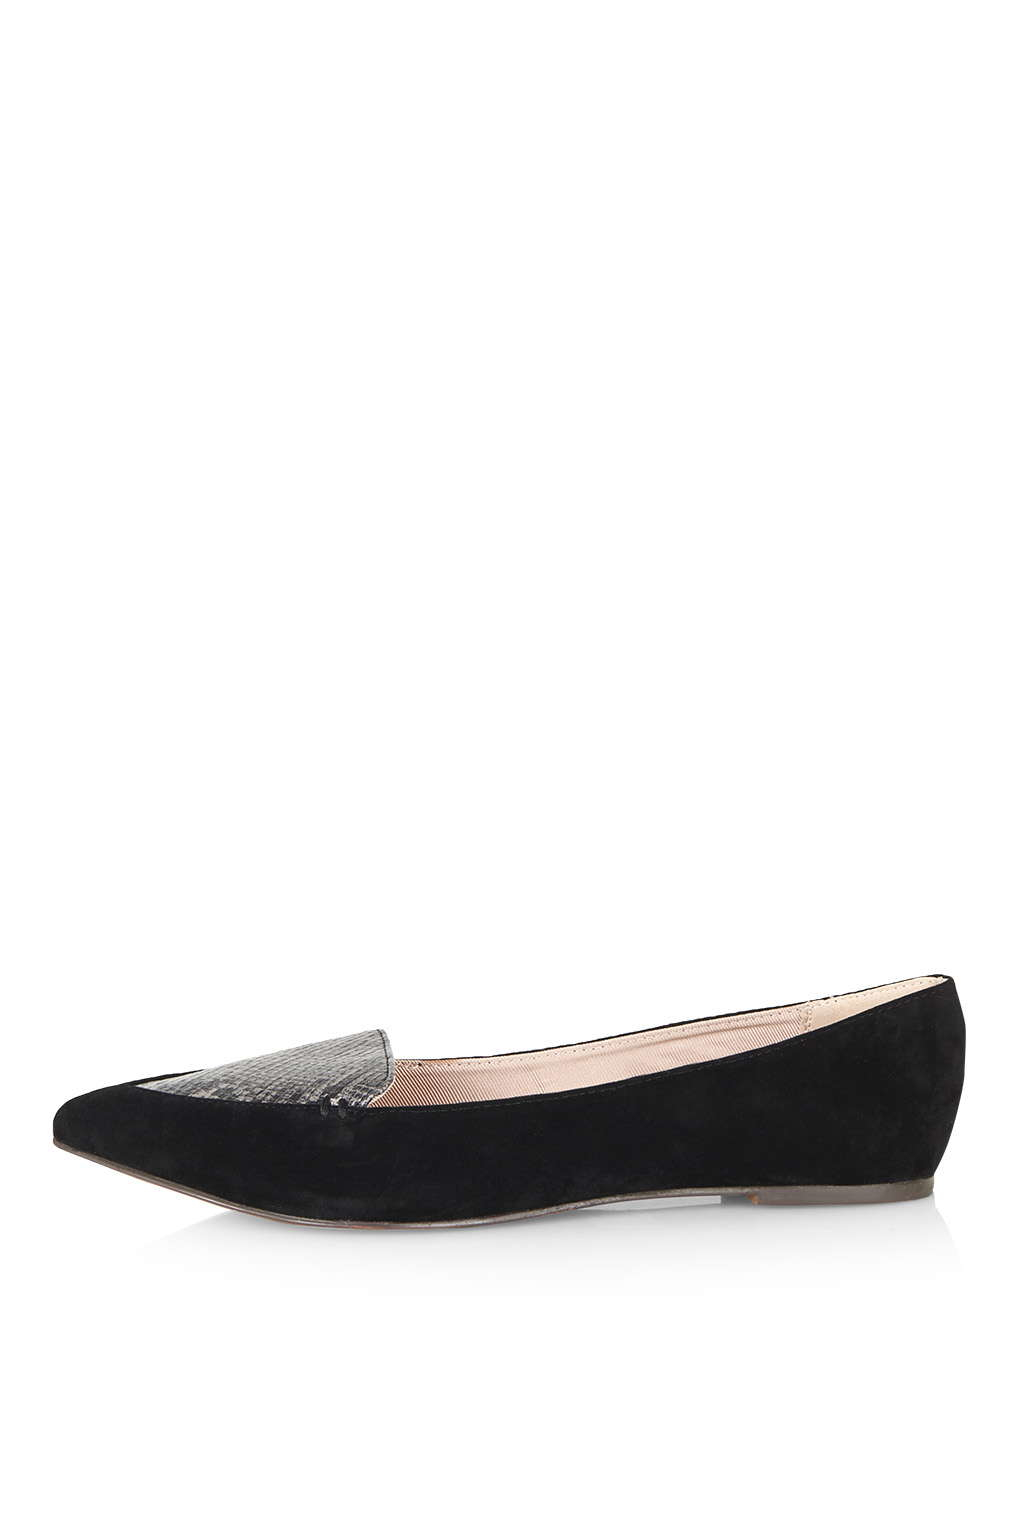 topshop snake print flat shoes in black lyst